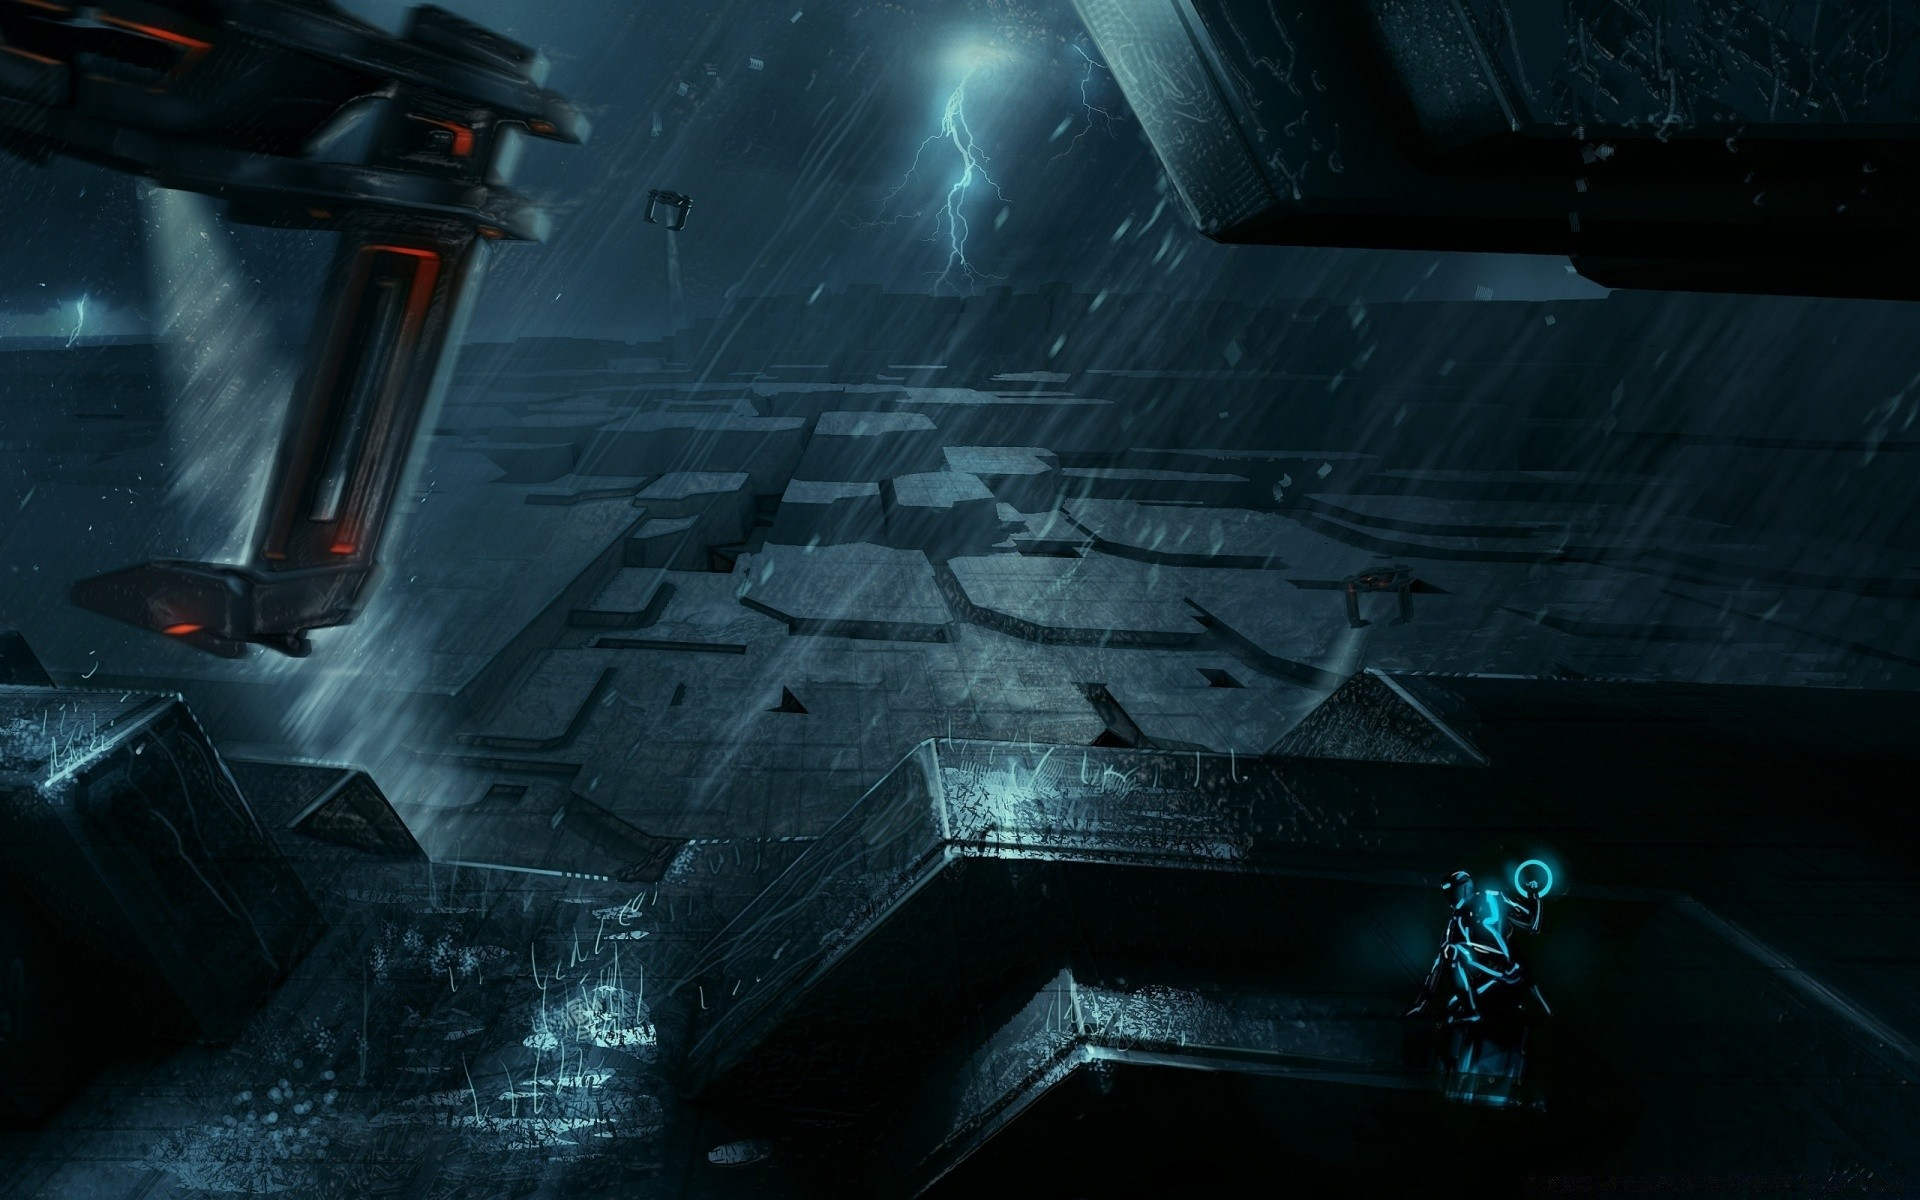 tron legacy artwork. android wallpapers for free.